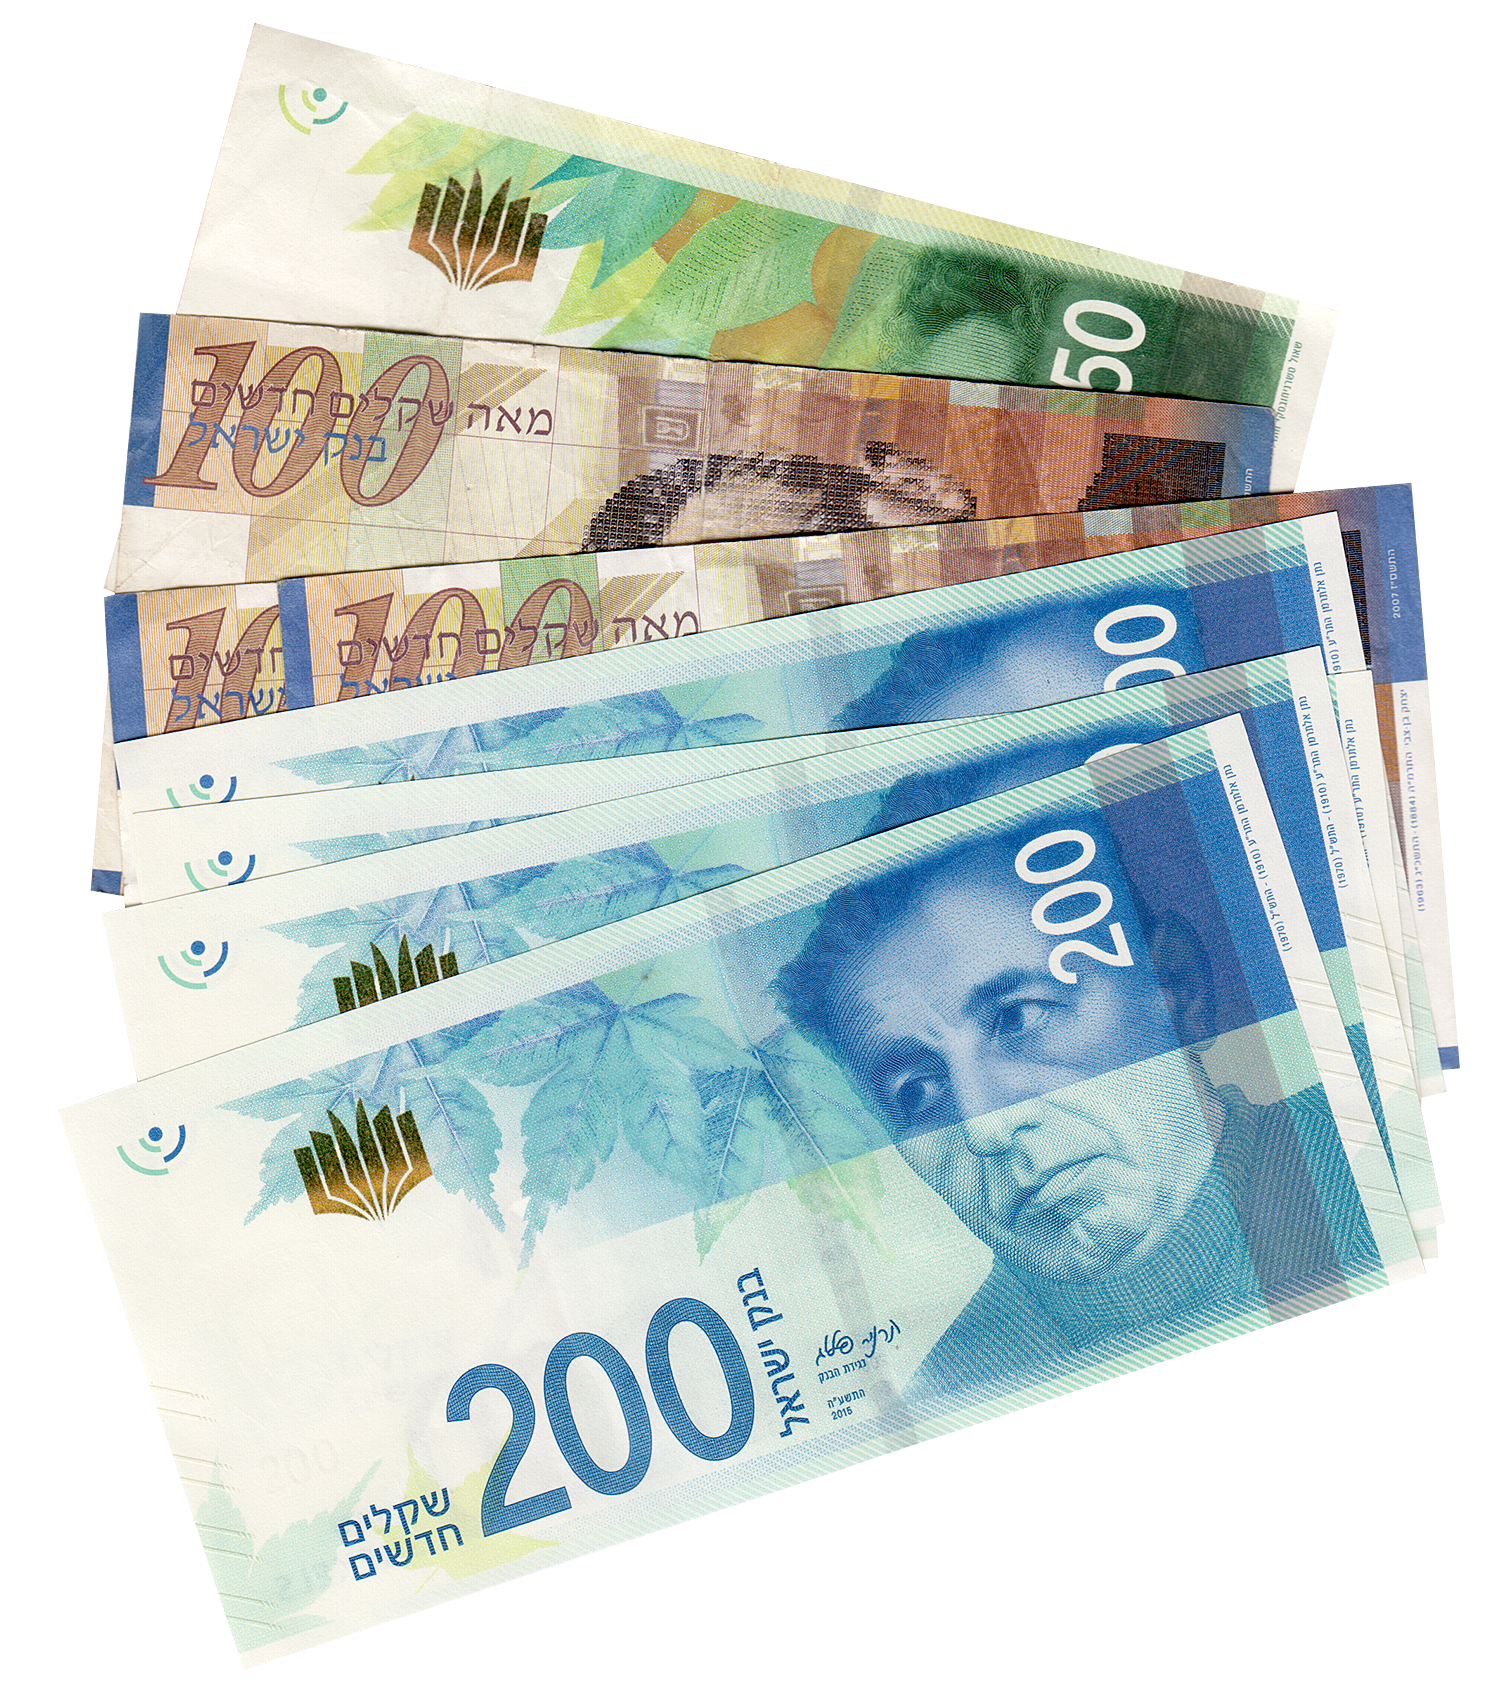 High quality Israeli Shekel Transparent Free Image